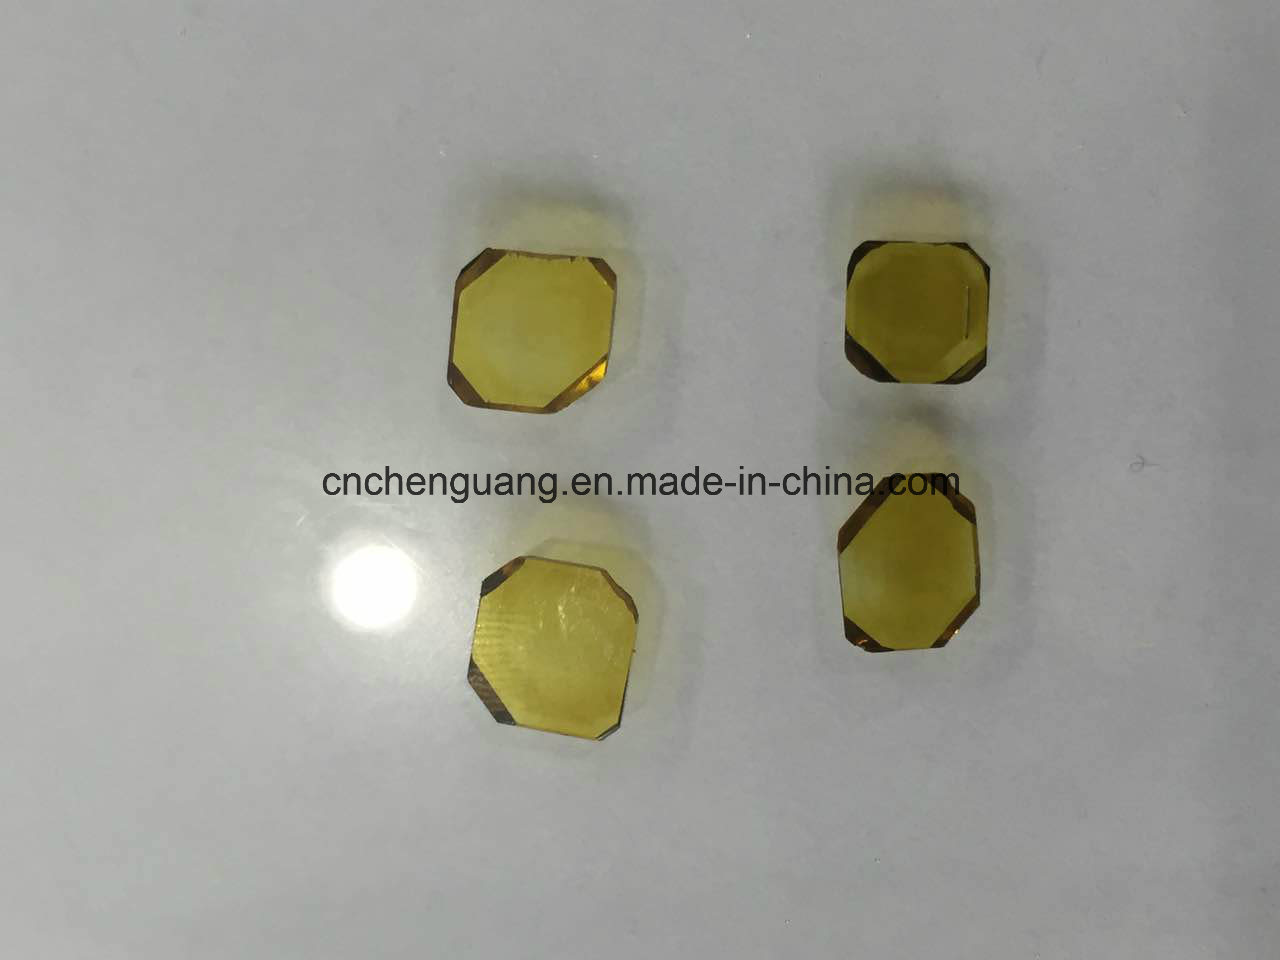 5*5mm Square Shape Hpht Monocrystal Diamond Plate for Cutting or Dresser